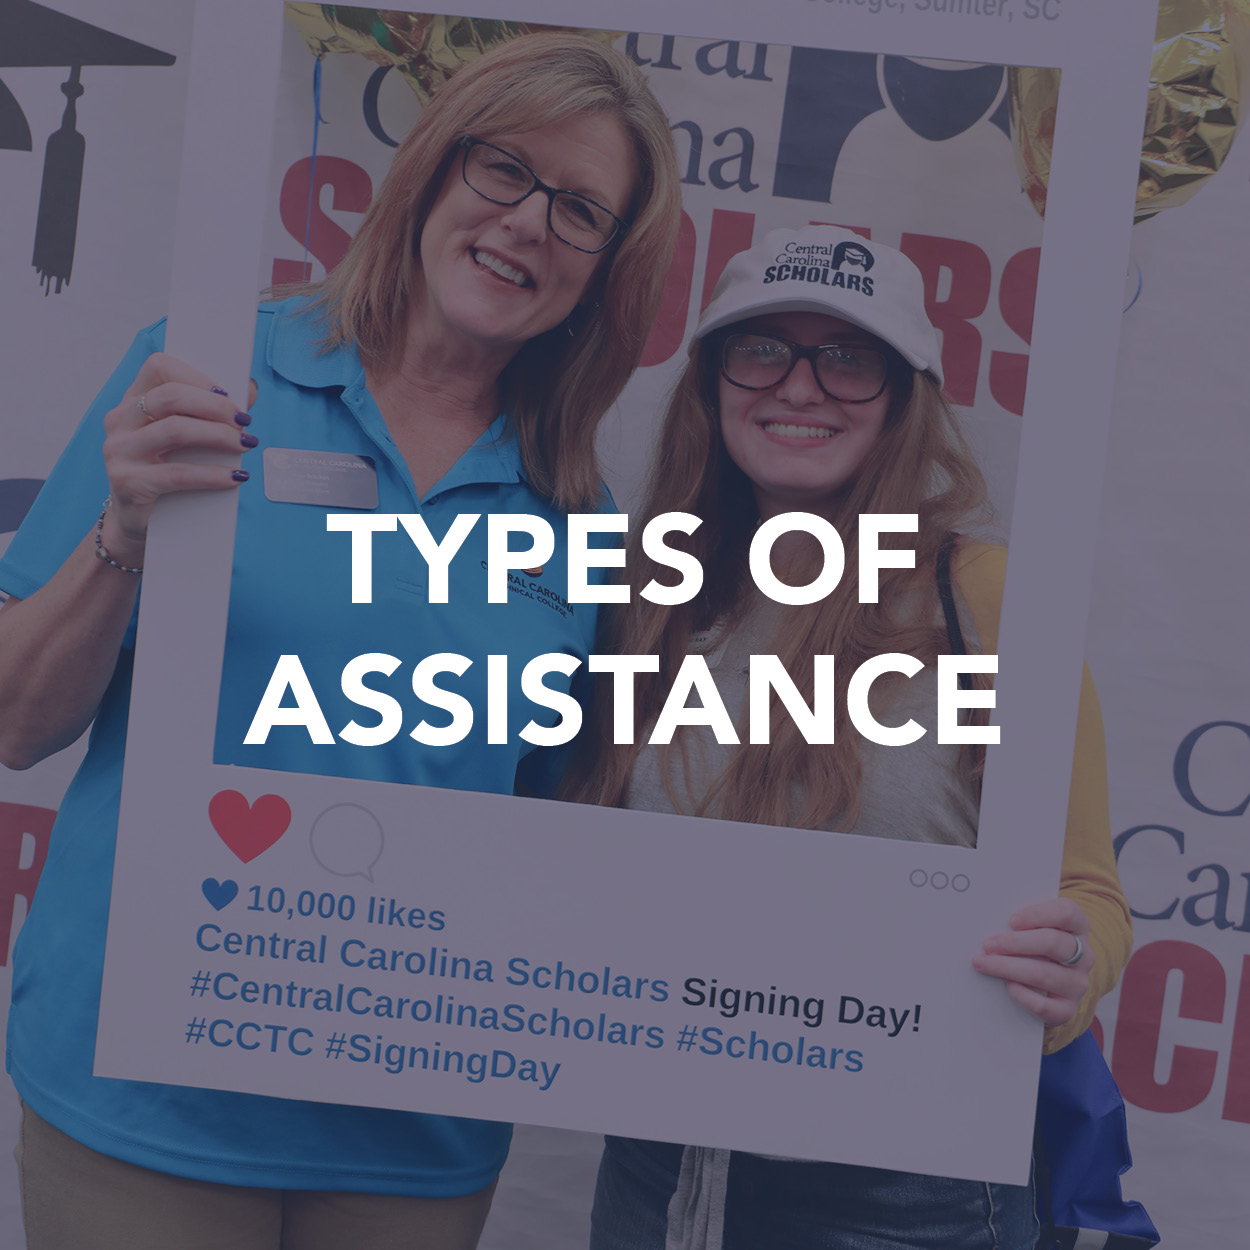 Types of Assistance